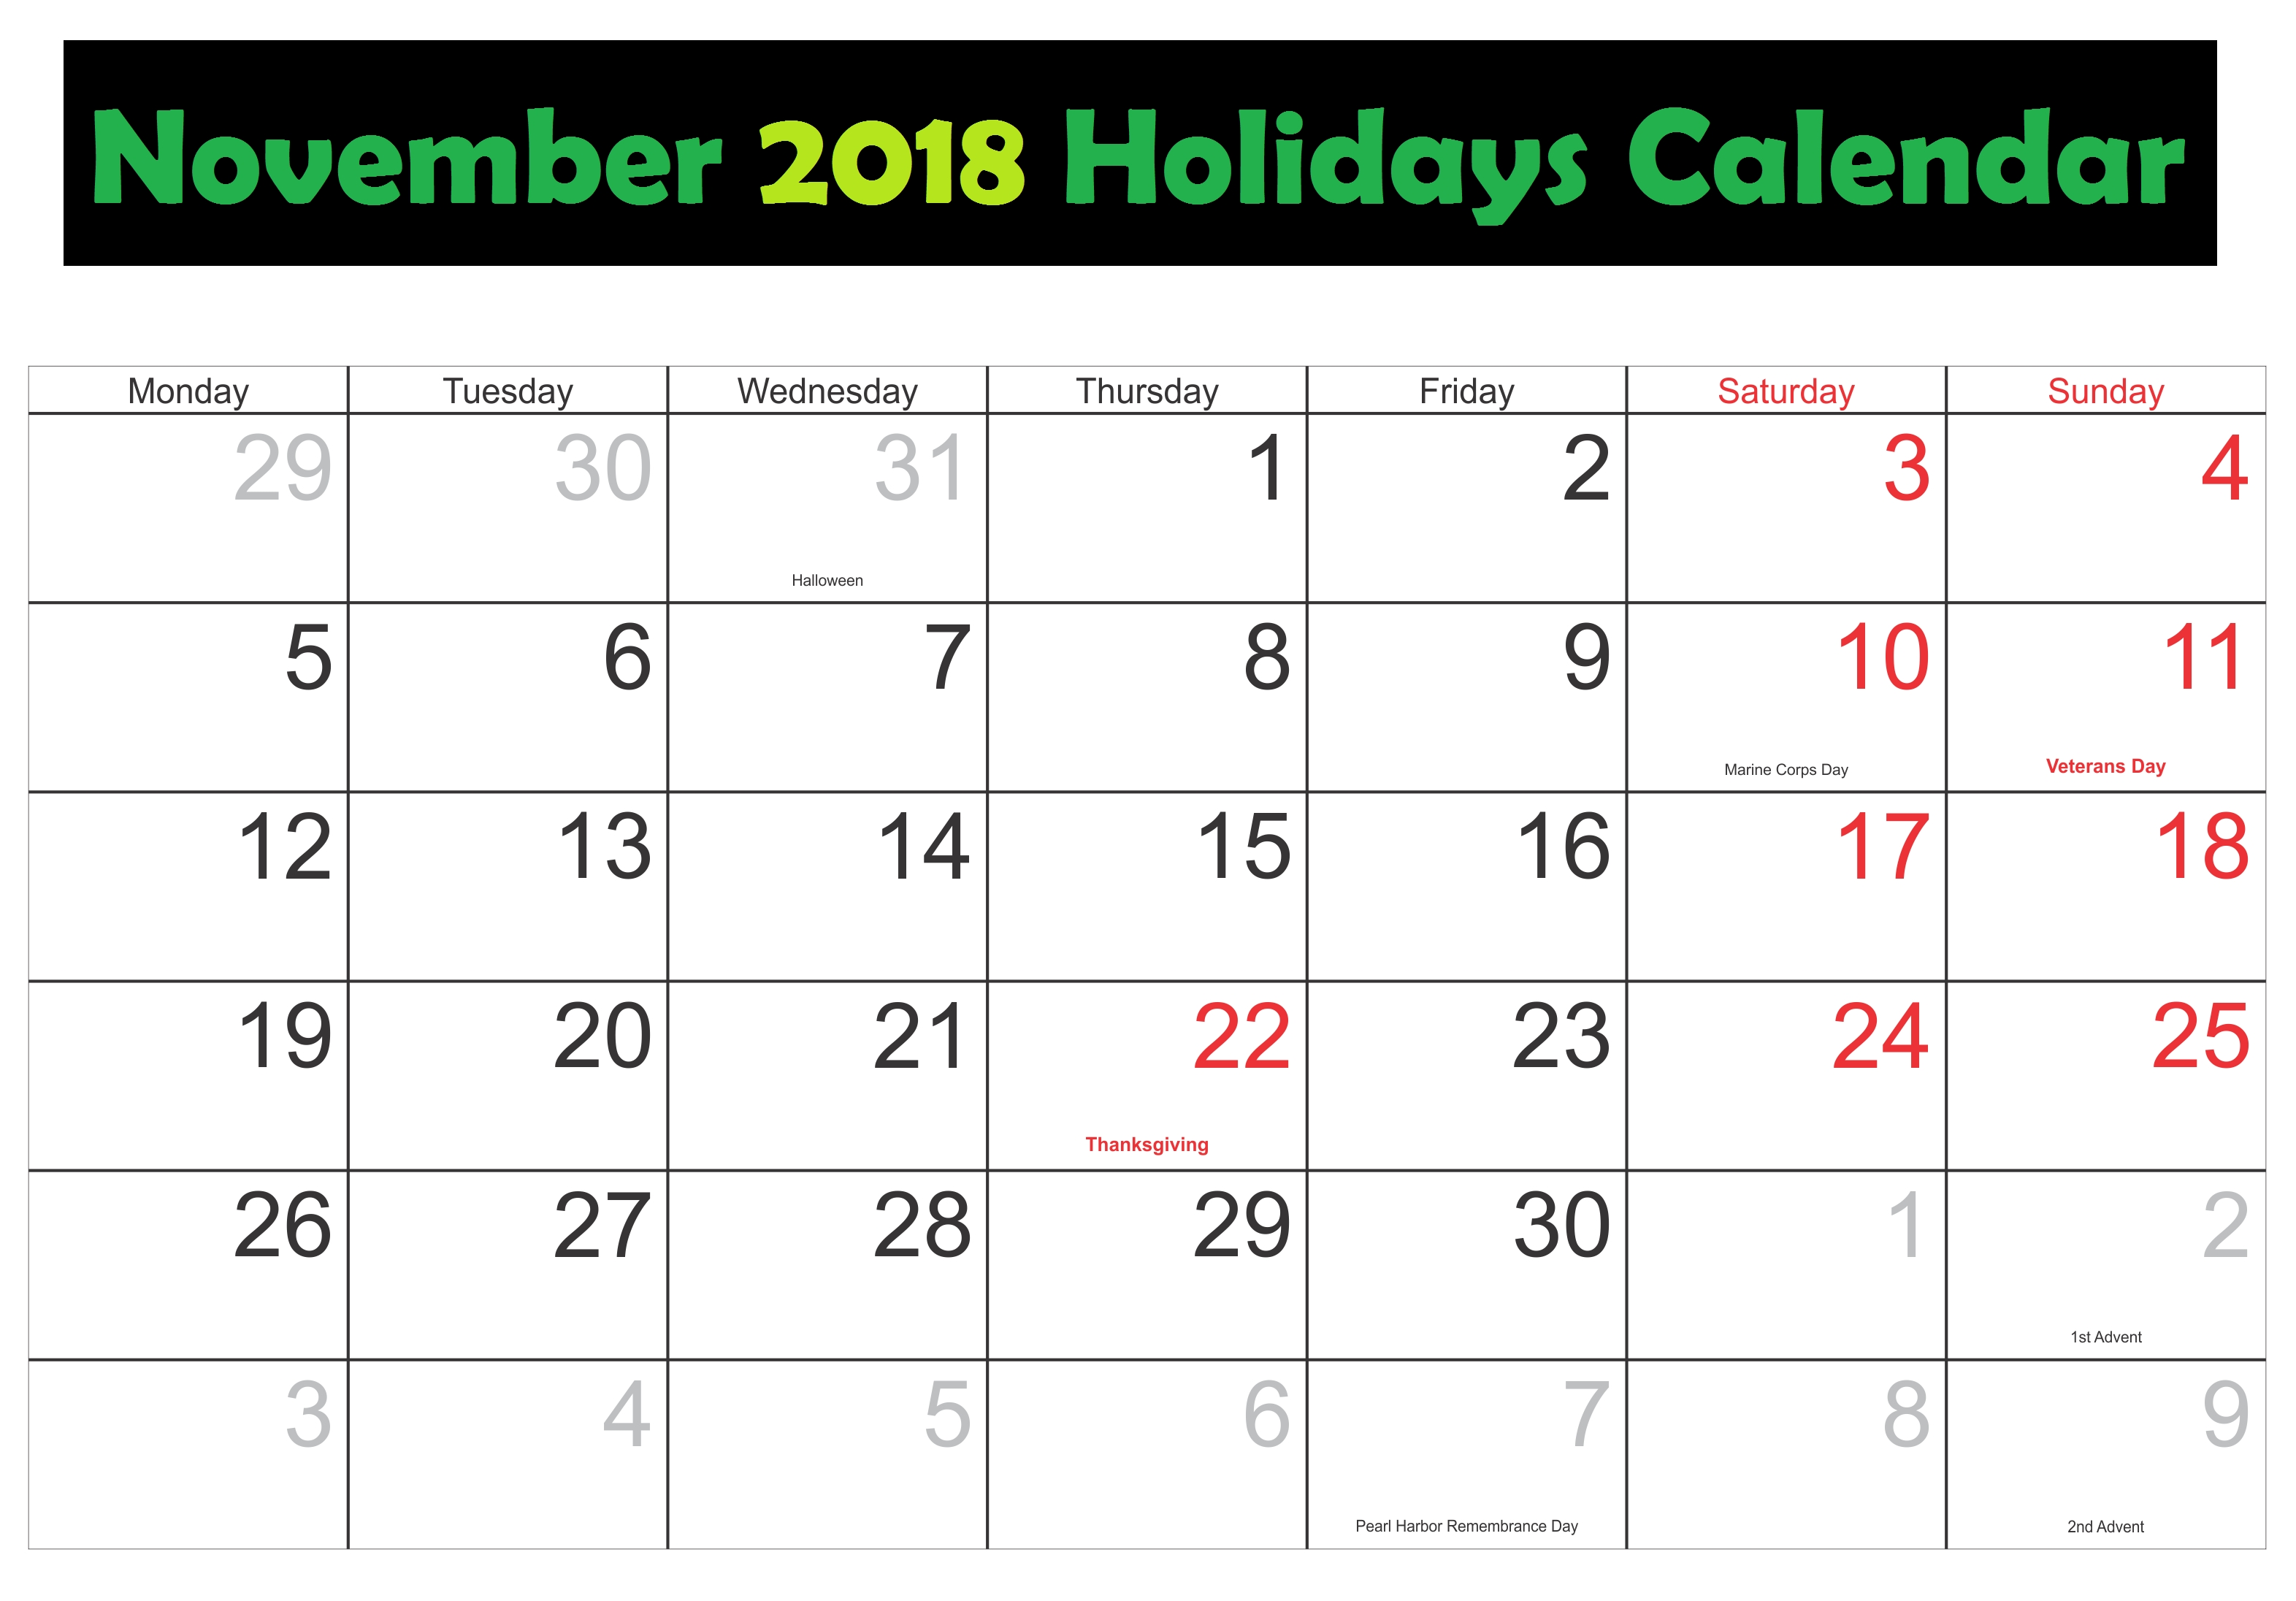 calendar for november 2018 with holidays business calendar templates::November 2018 Calendar